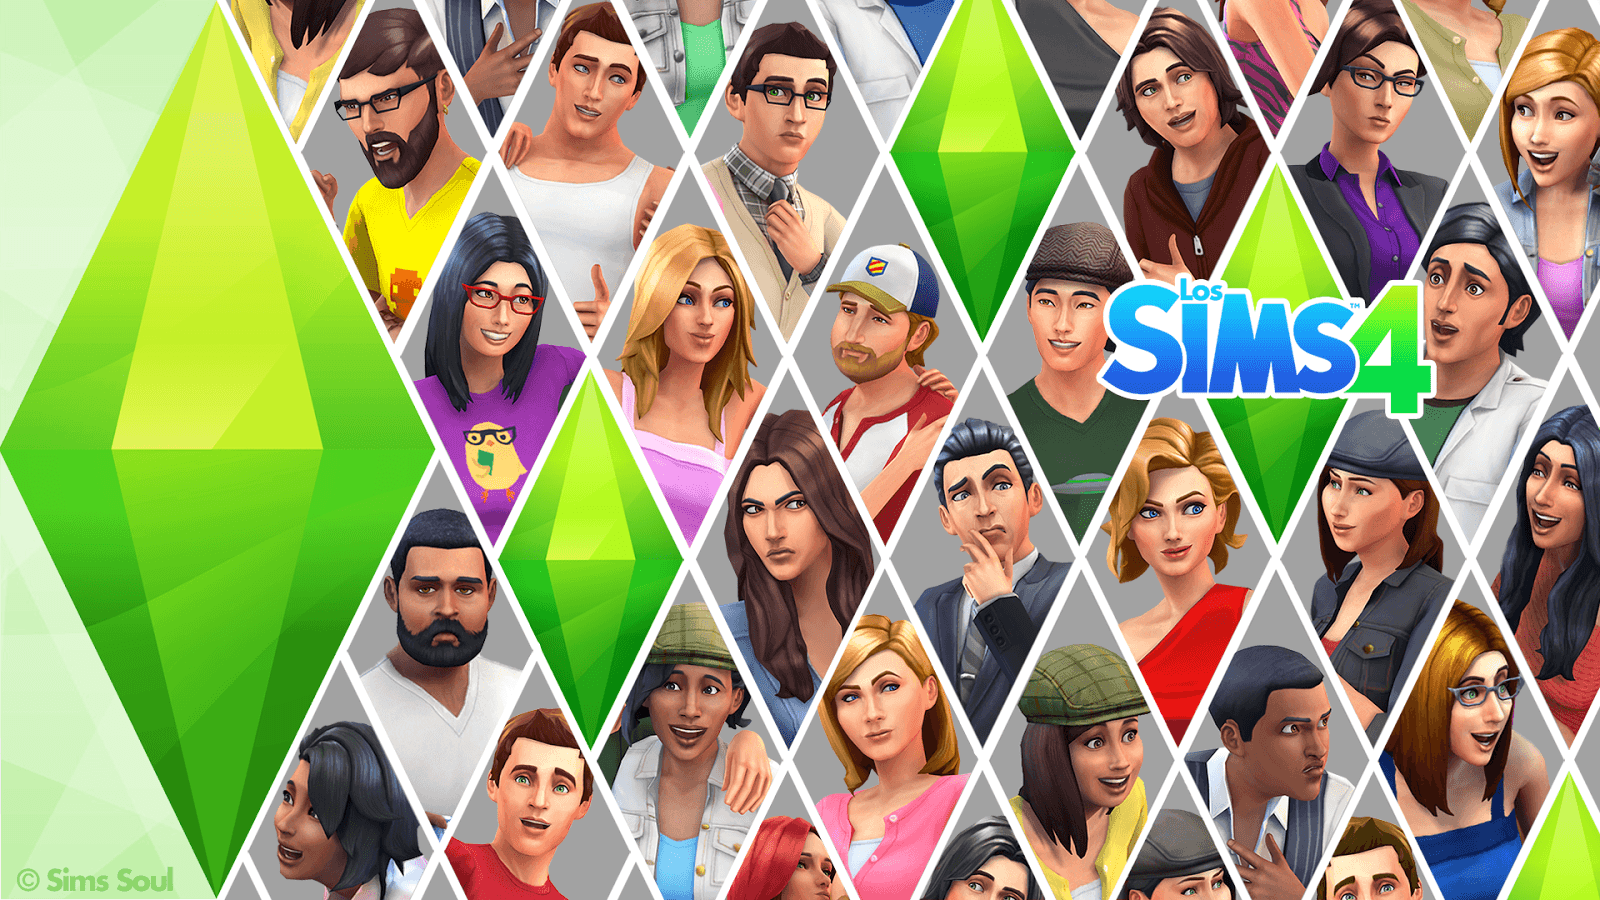 The Sims 4 CC Wallpaper - WallpaperSafari